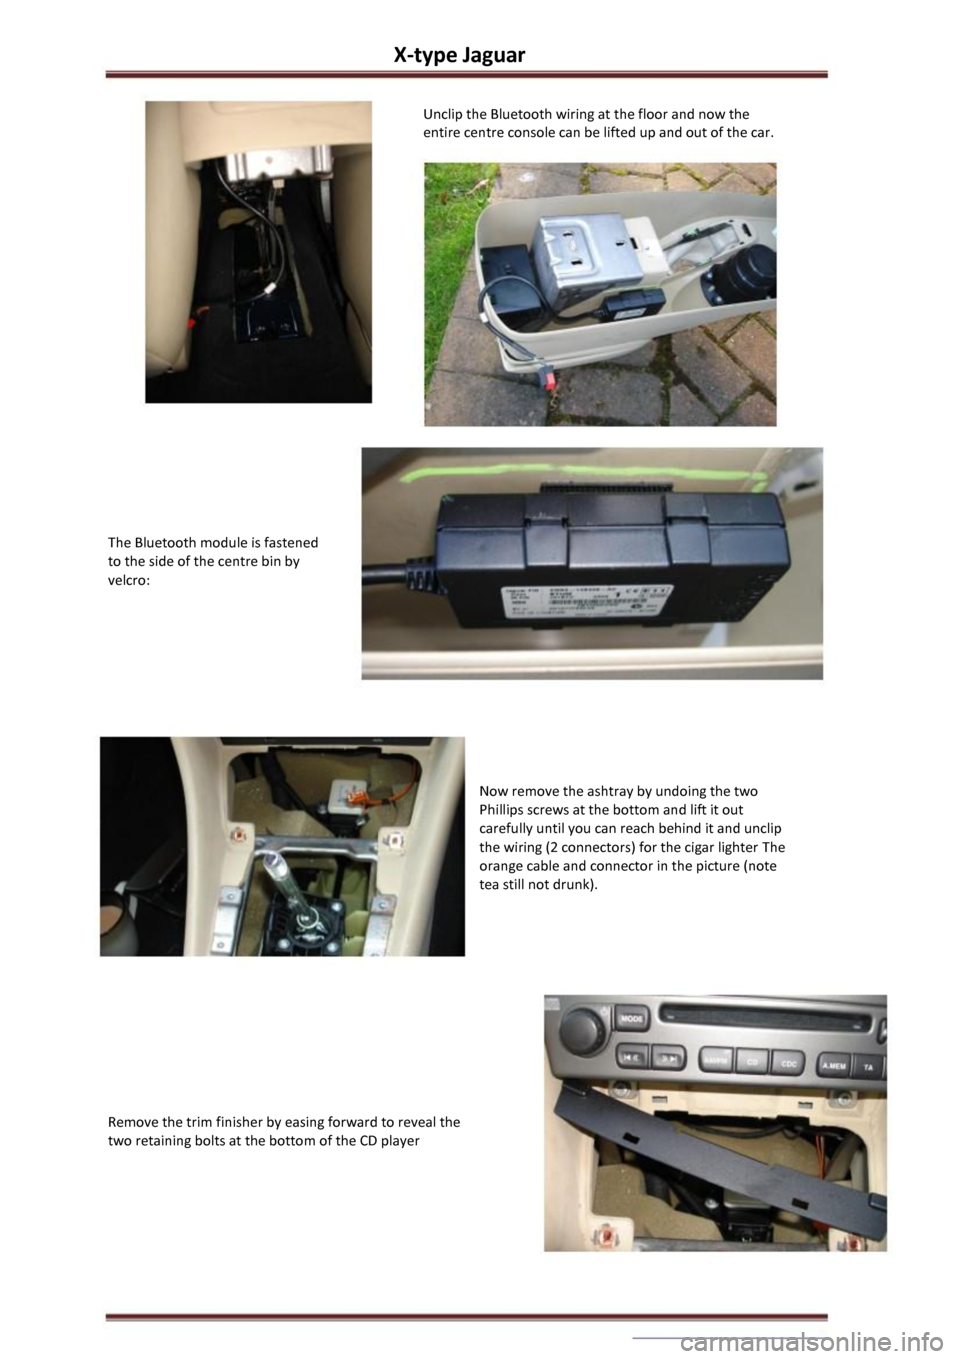 JAGUAR X TYPE 2002 1.G Owners Manual X-type Jaguar  Unclip the Bluetooth wiring at the floor and now the  entire centre console can be lifted up and out of the car.  The Bluetooth module is fastened  to the side of the centre bin by  vel